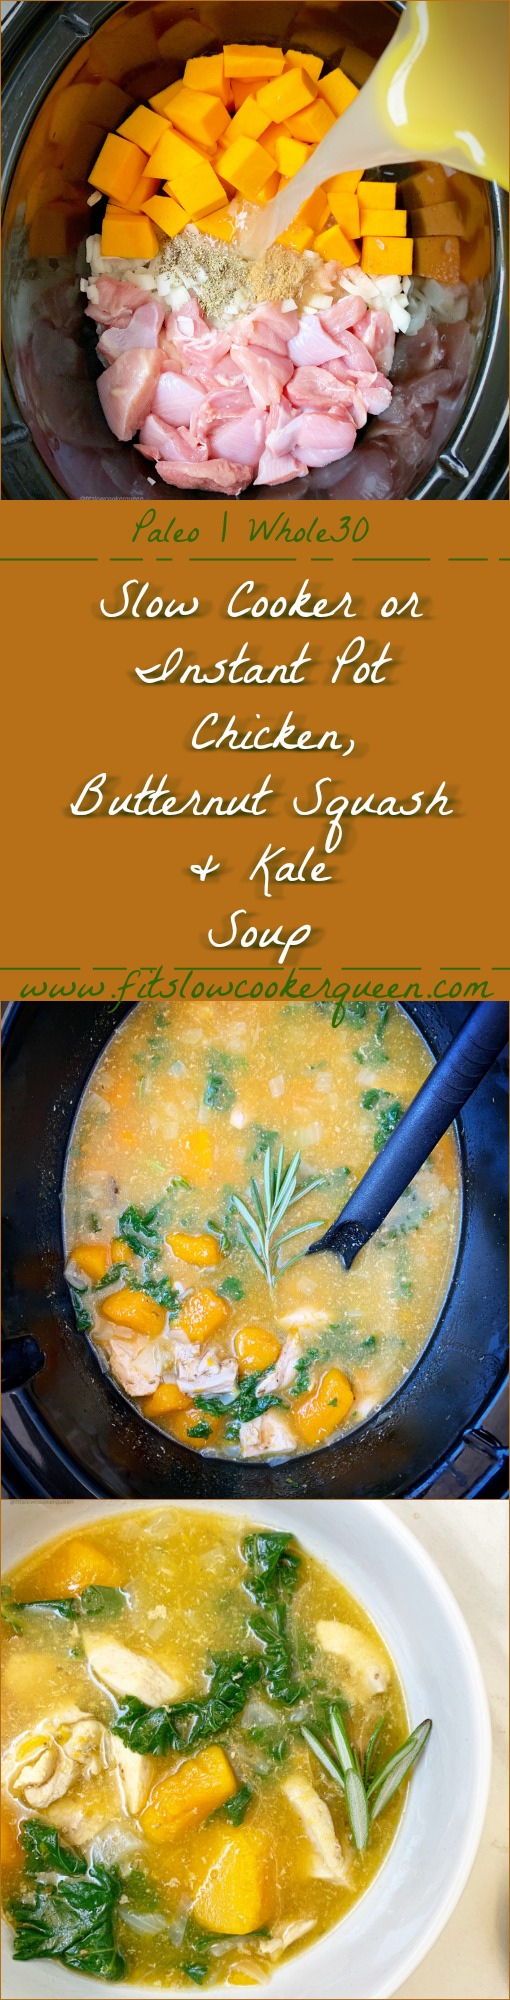 Chicken, butternut squash, and kale cook together in this easy paleo and whole30 compliant recipe.This soup can be made in your slow cooker or Instant Pot.